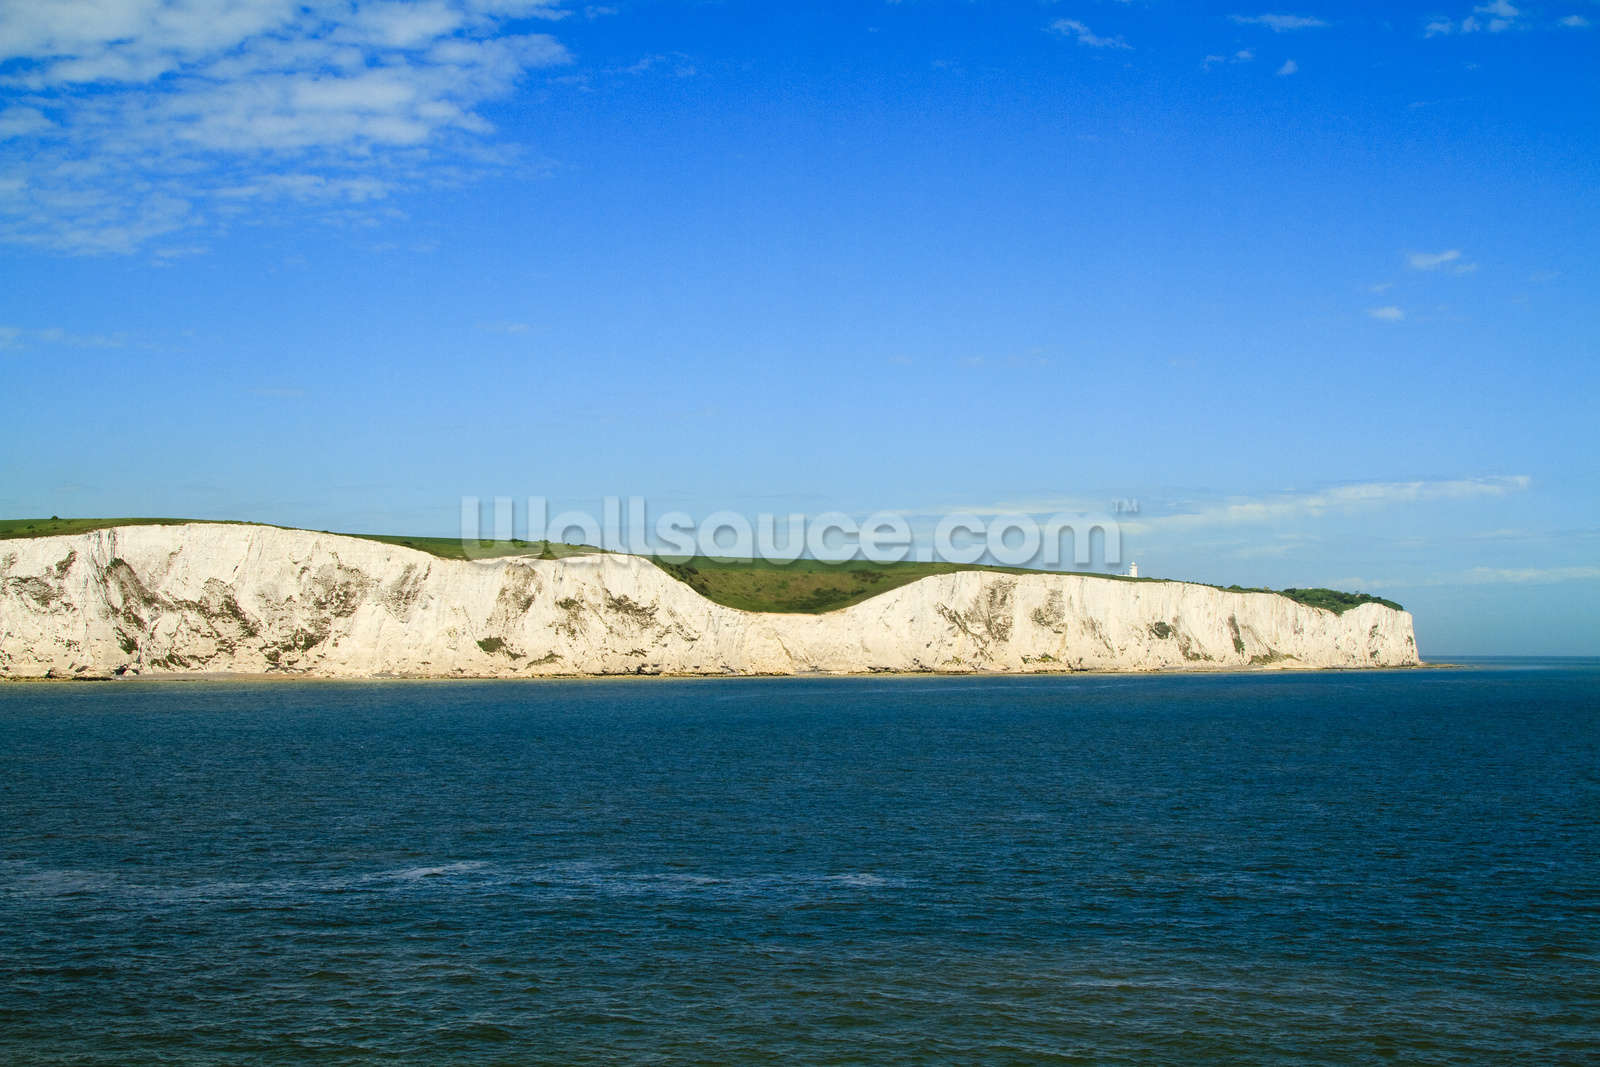 White cliffs of dover panoramic wallpaper wall mural wallsauce usa save your design for later amipublicfo Gallery